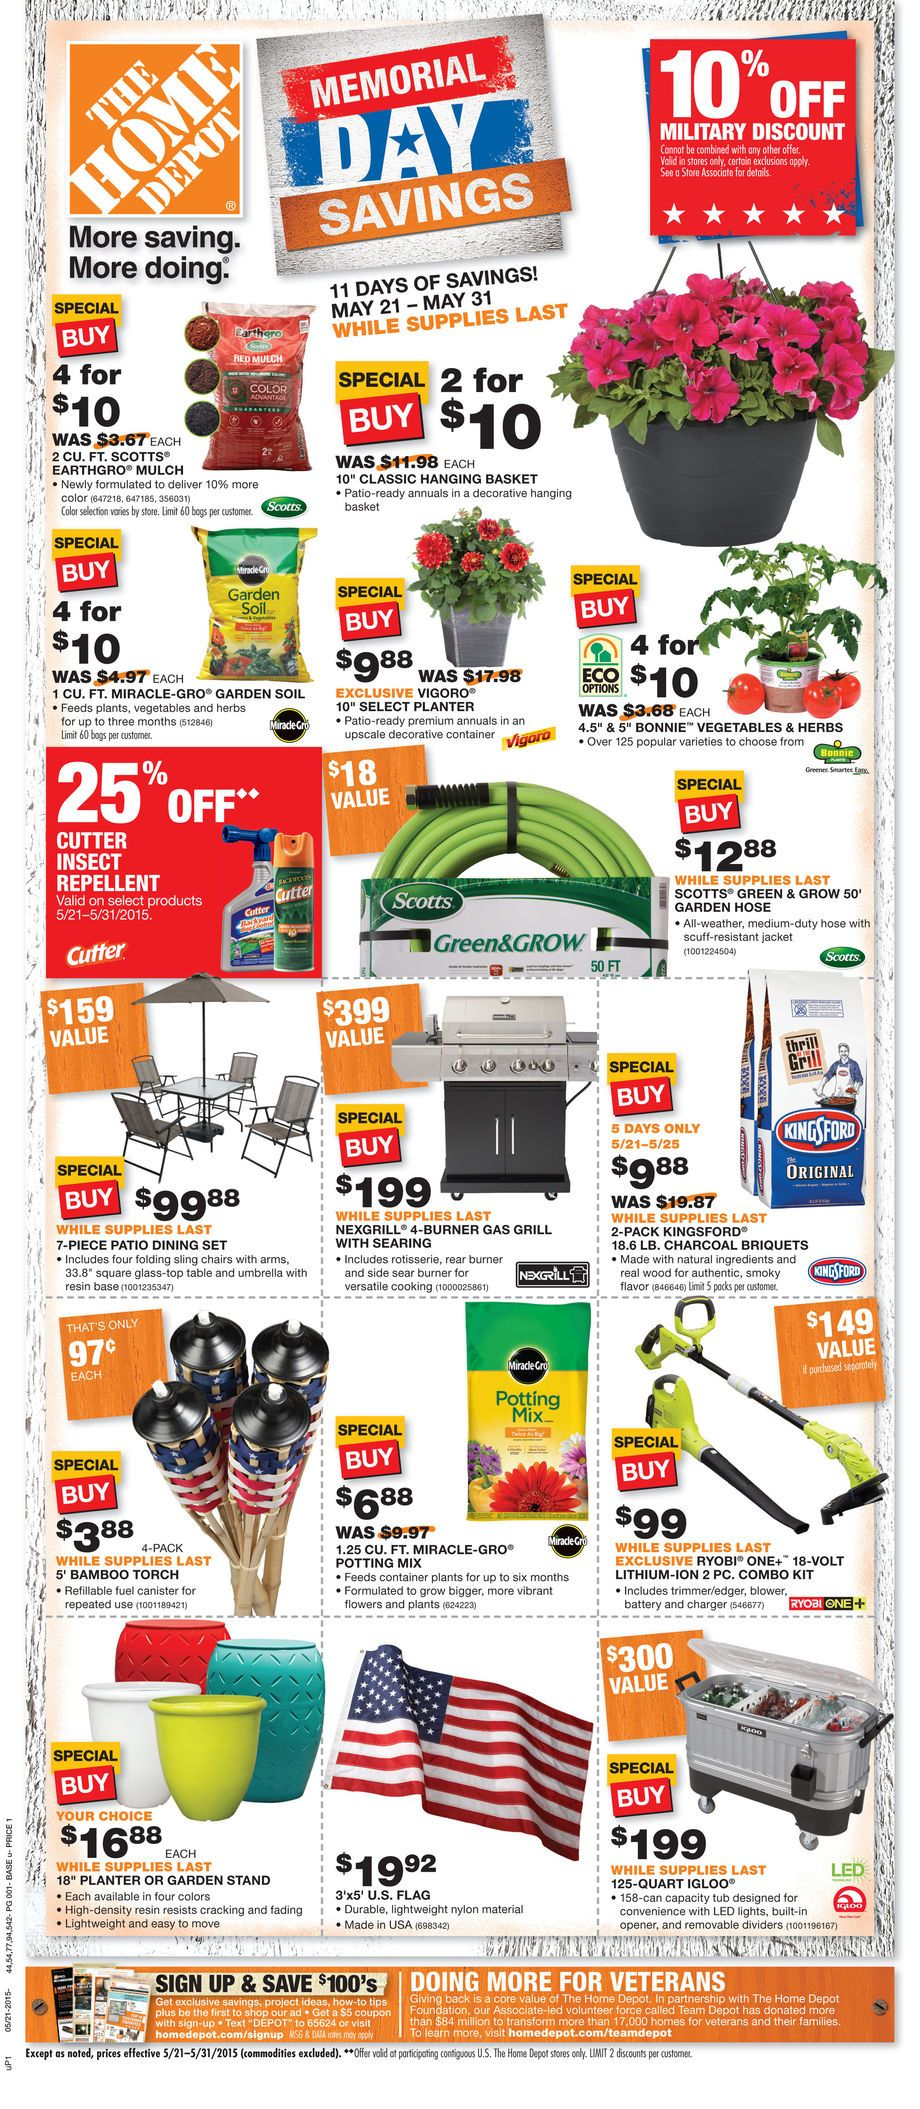 Seattle Home Depot Local Ads, Guides, and Catalogs Local